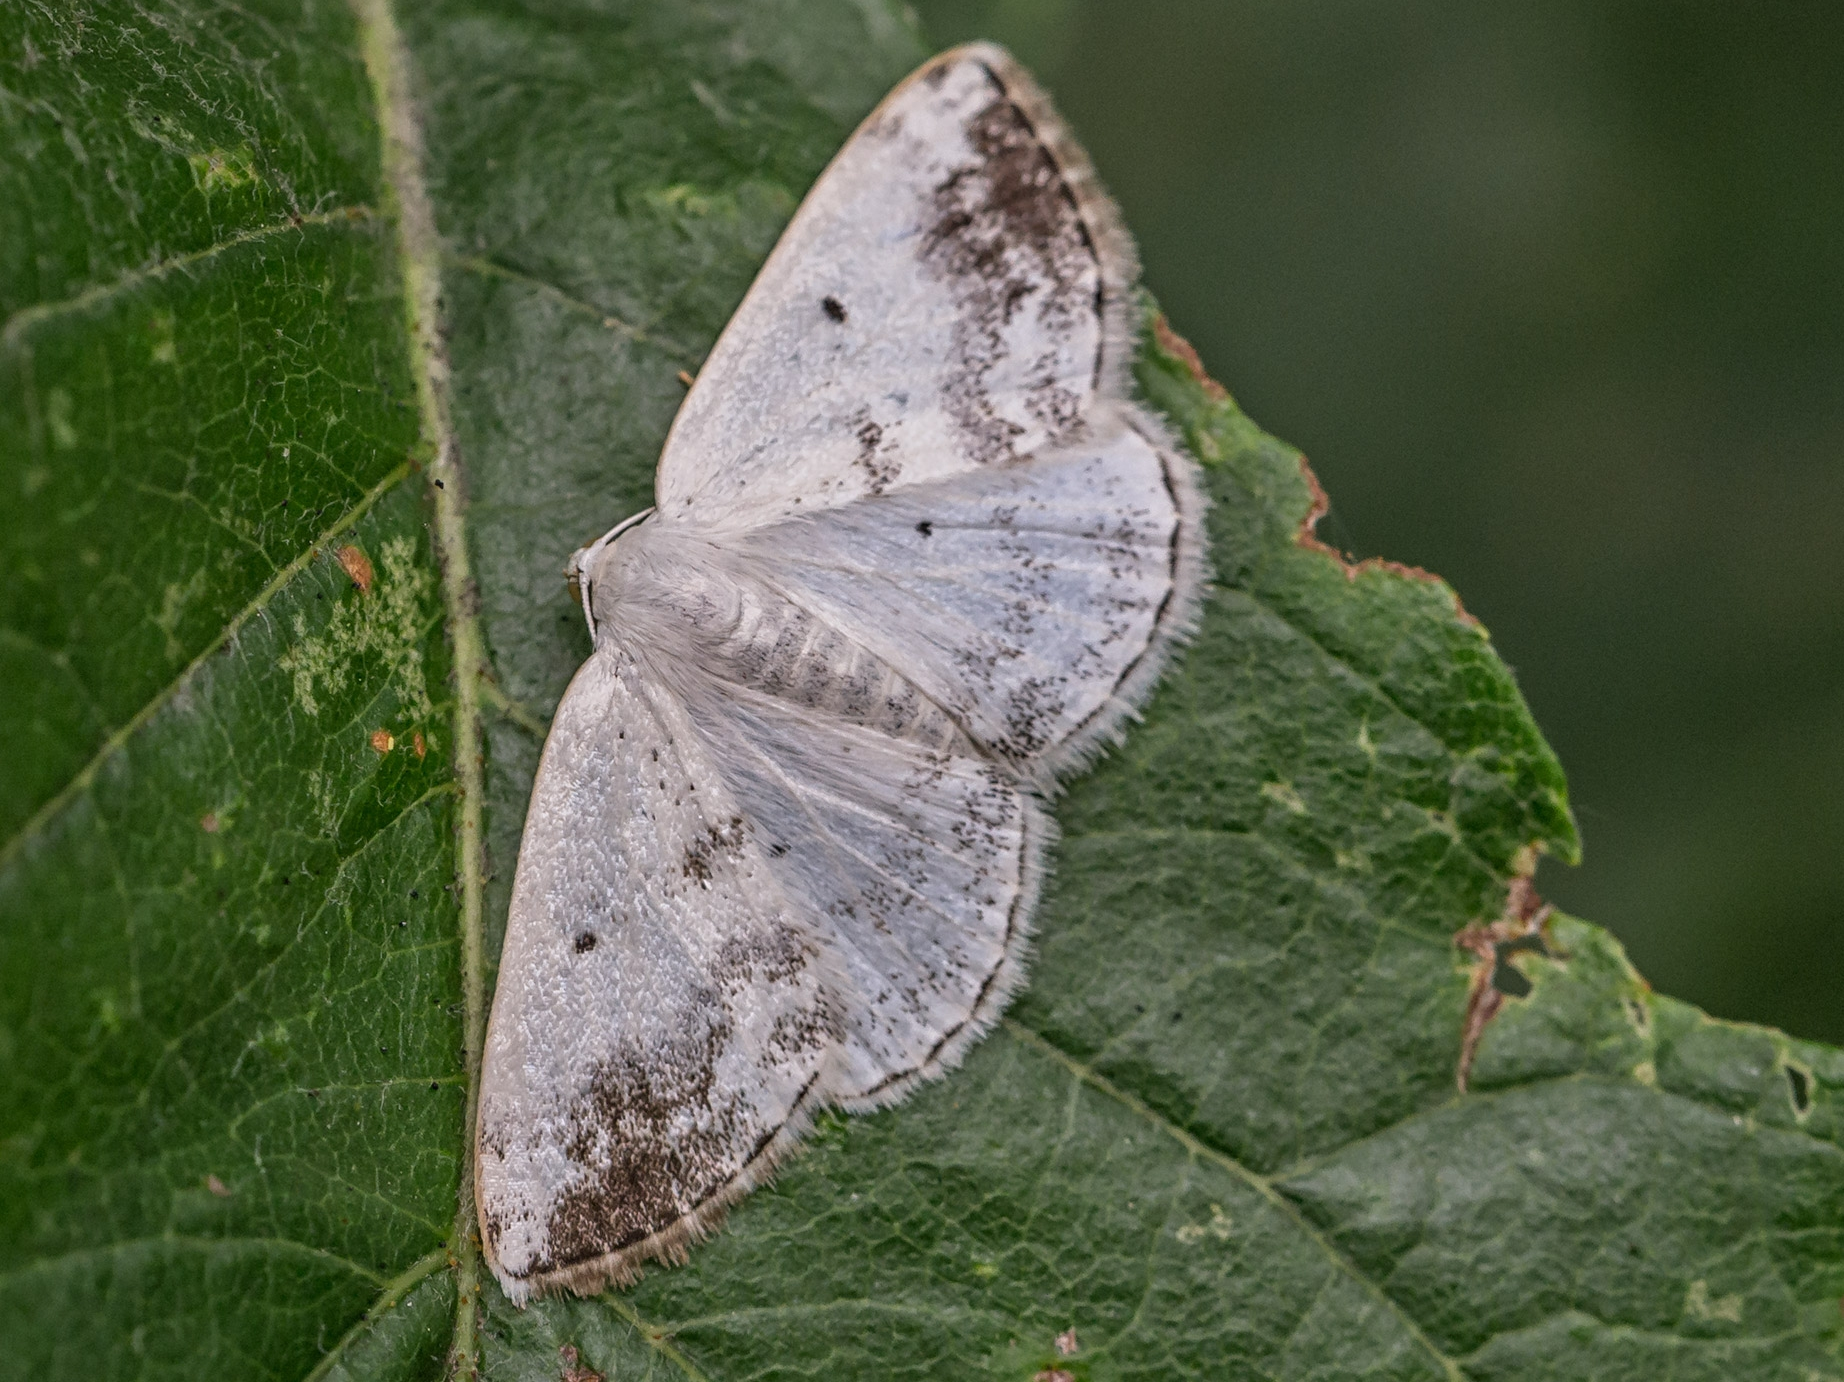 Clouded Silver Lomographa Temerata Norfolk Moths The